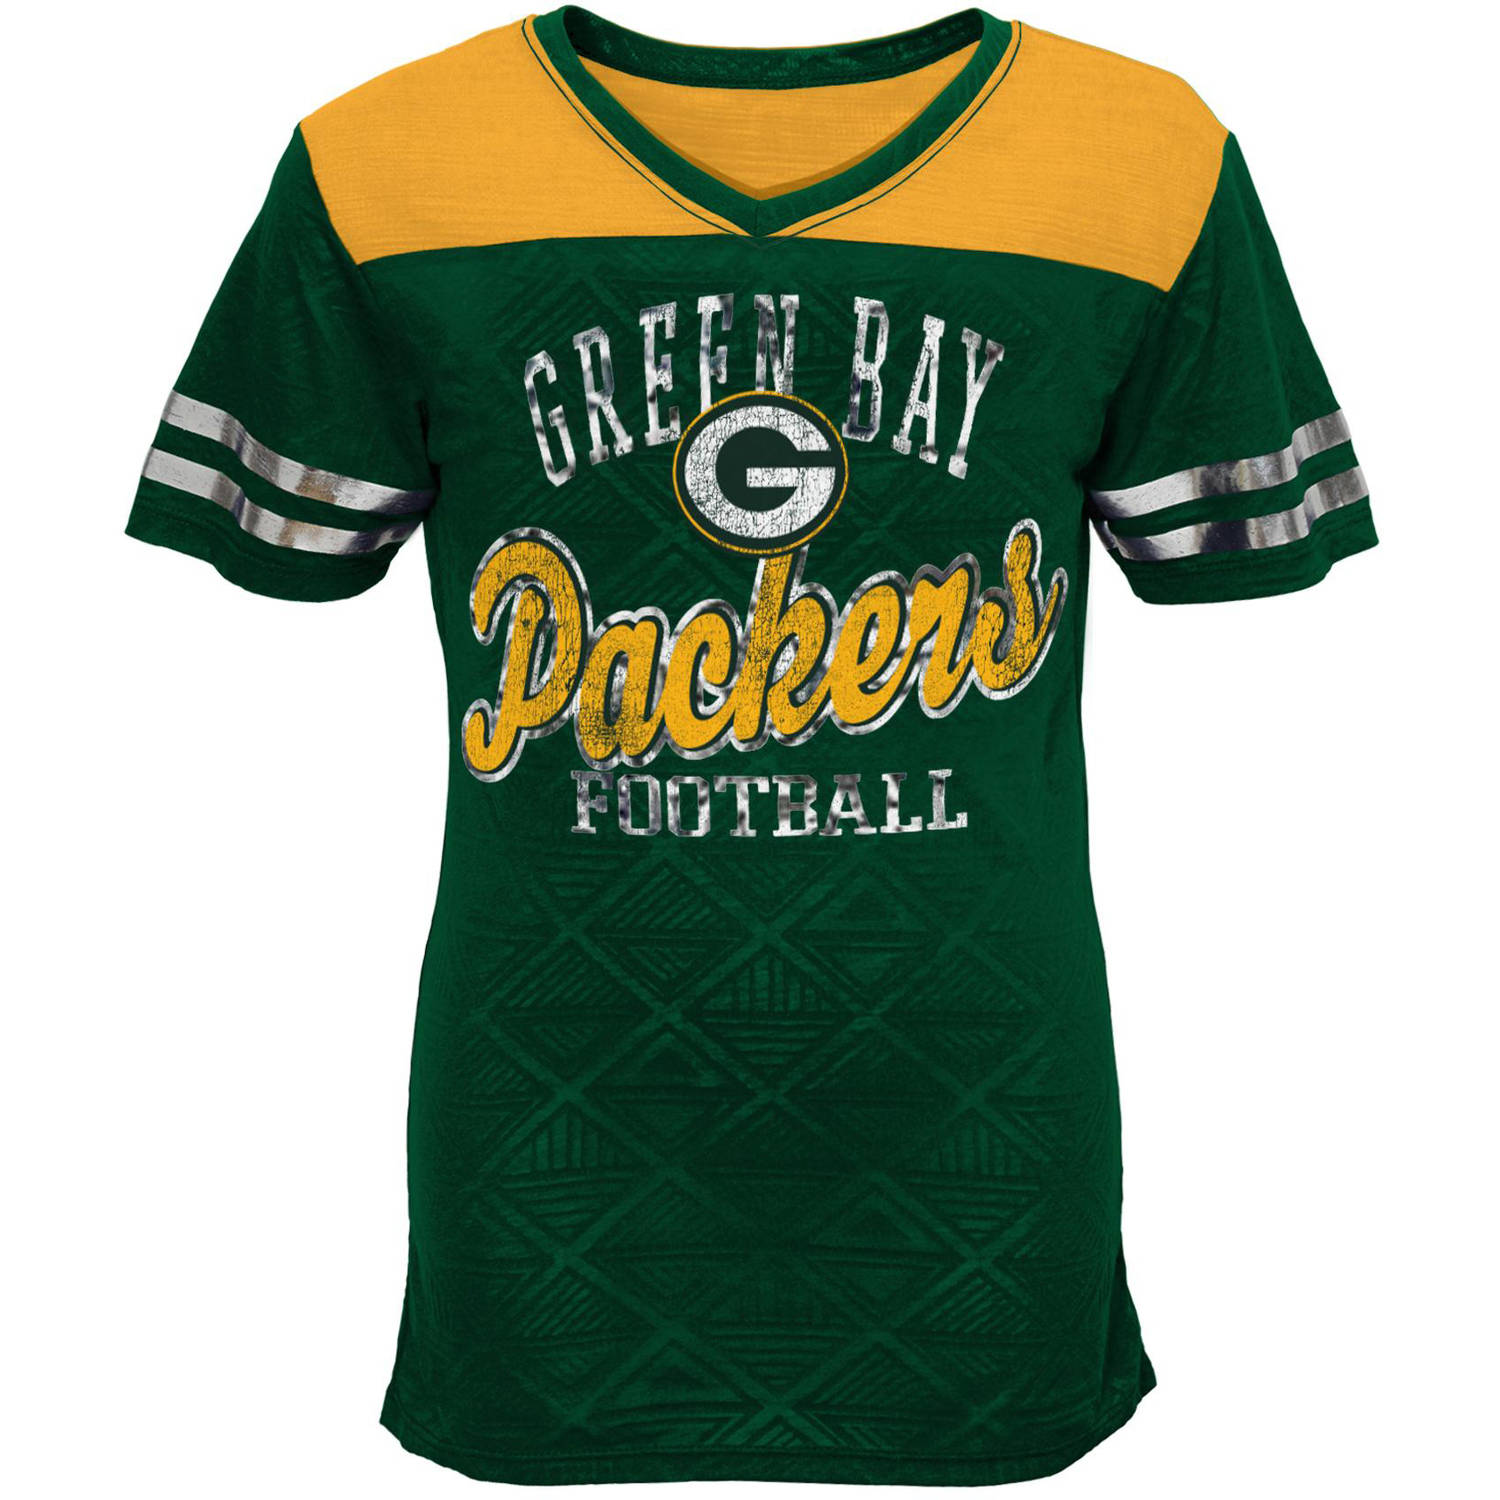 NFL Girls Packers Short Sleeve Vneck Team Top